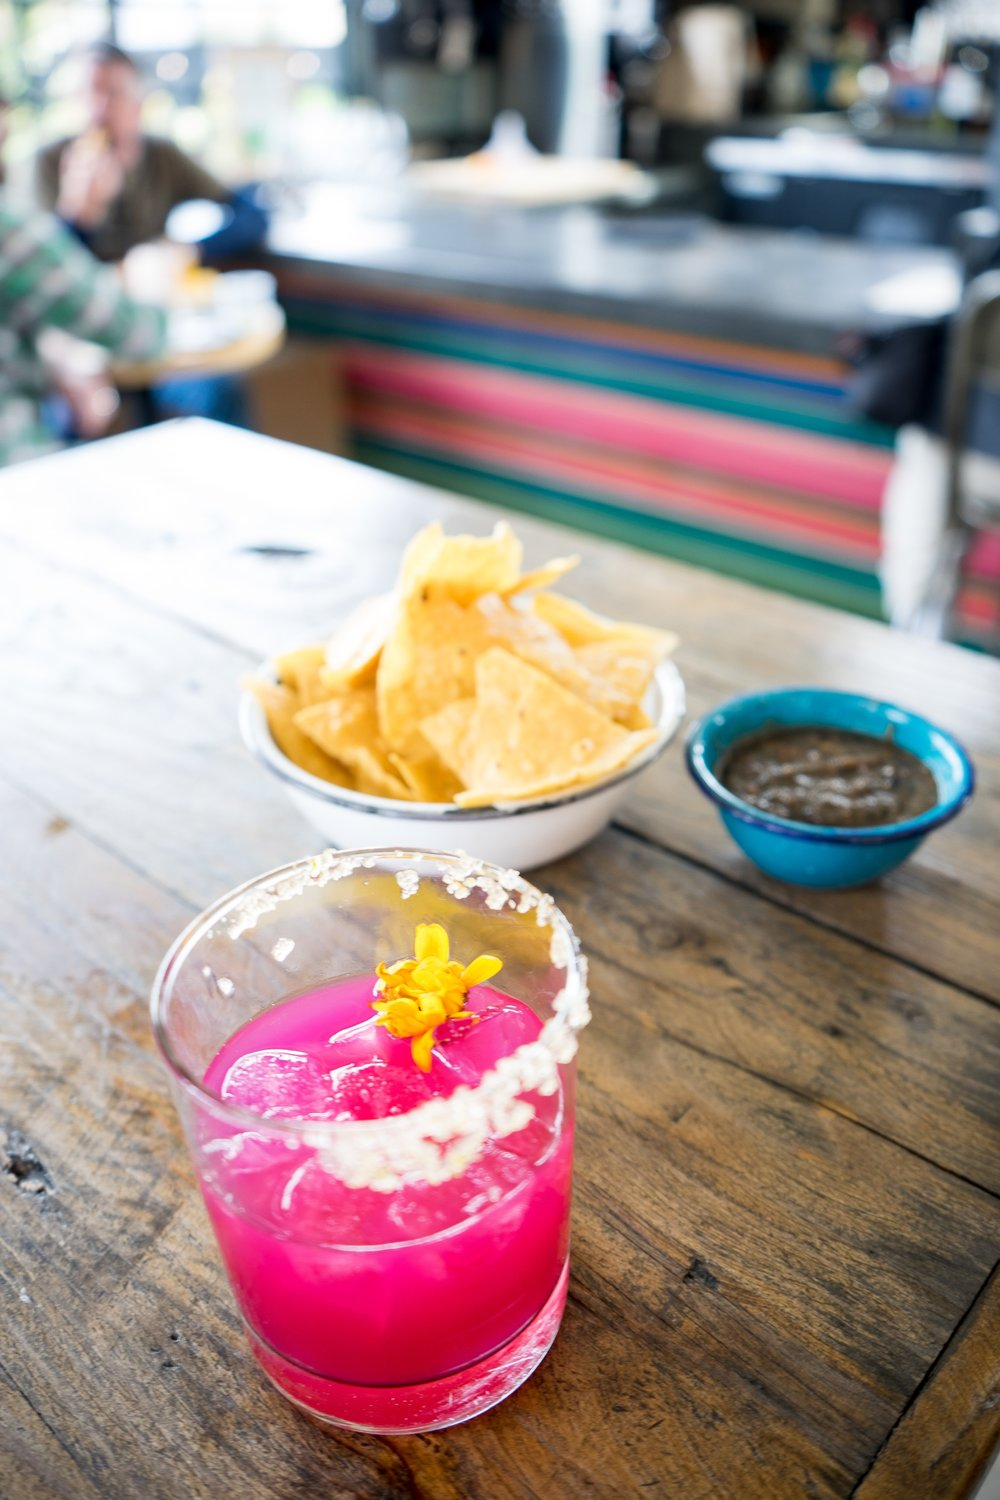 Prickly Pear Margarita and Chips and Salsa at Salazar, Frogtown, Los Angeles, CA